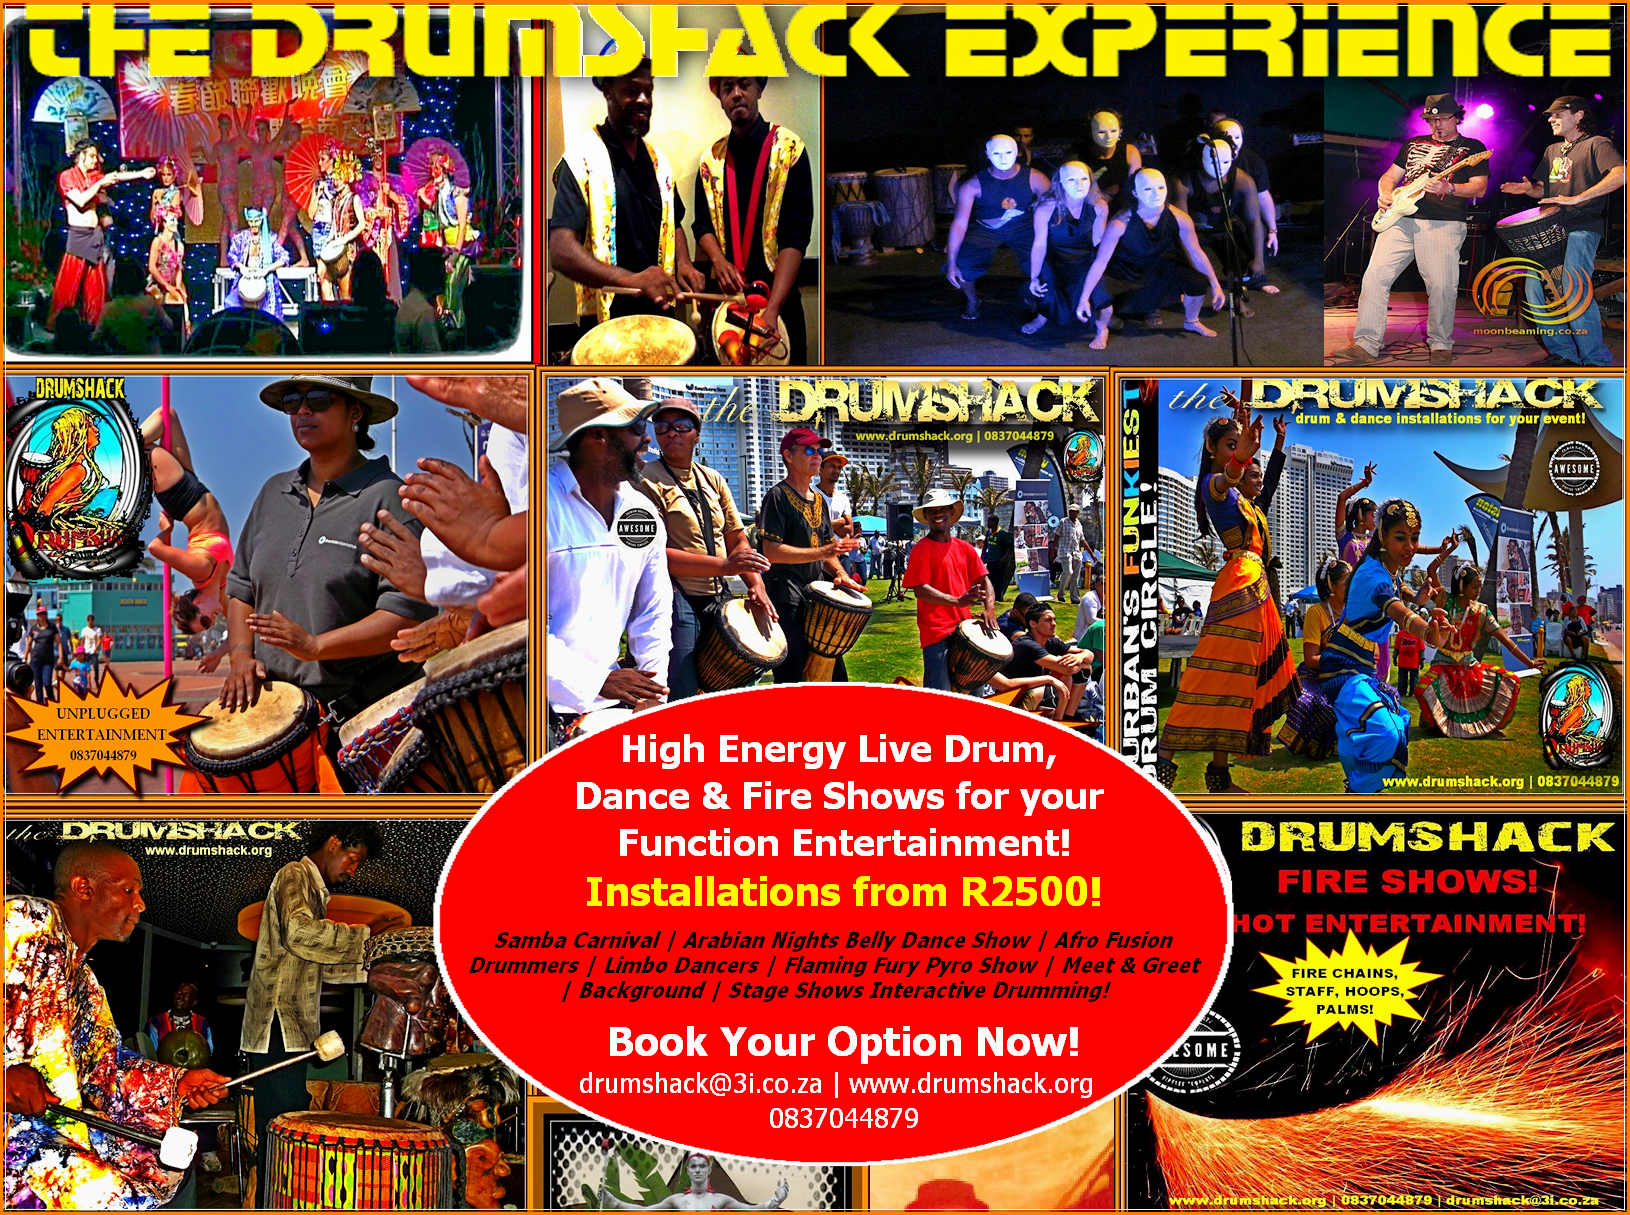 DRUMSHACK YEAR END ENTERTAINMENT 01